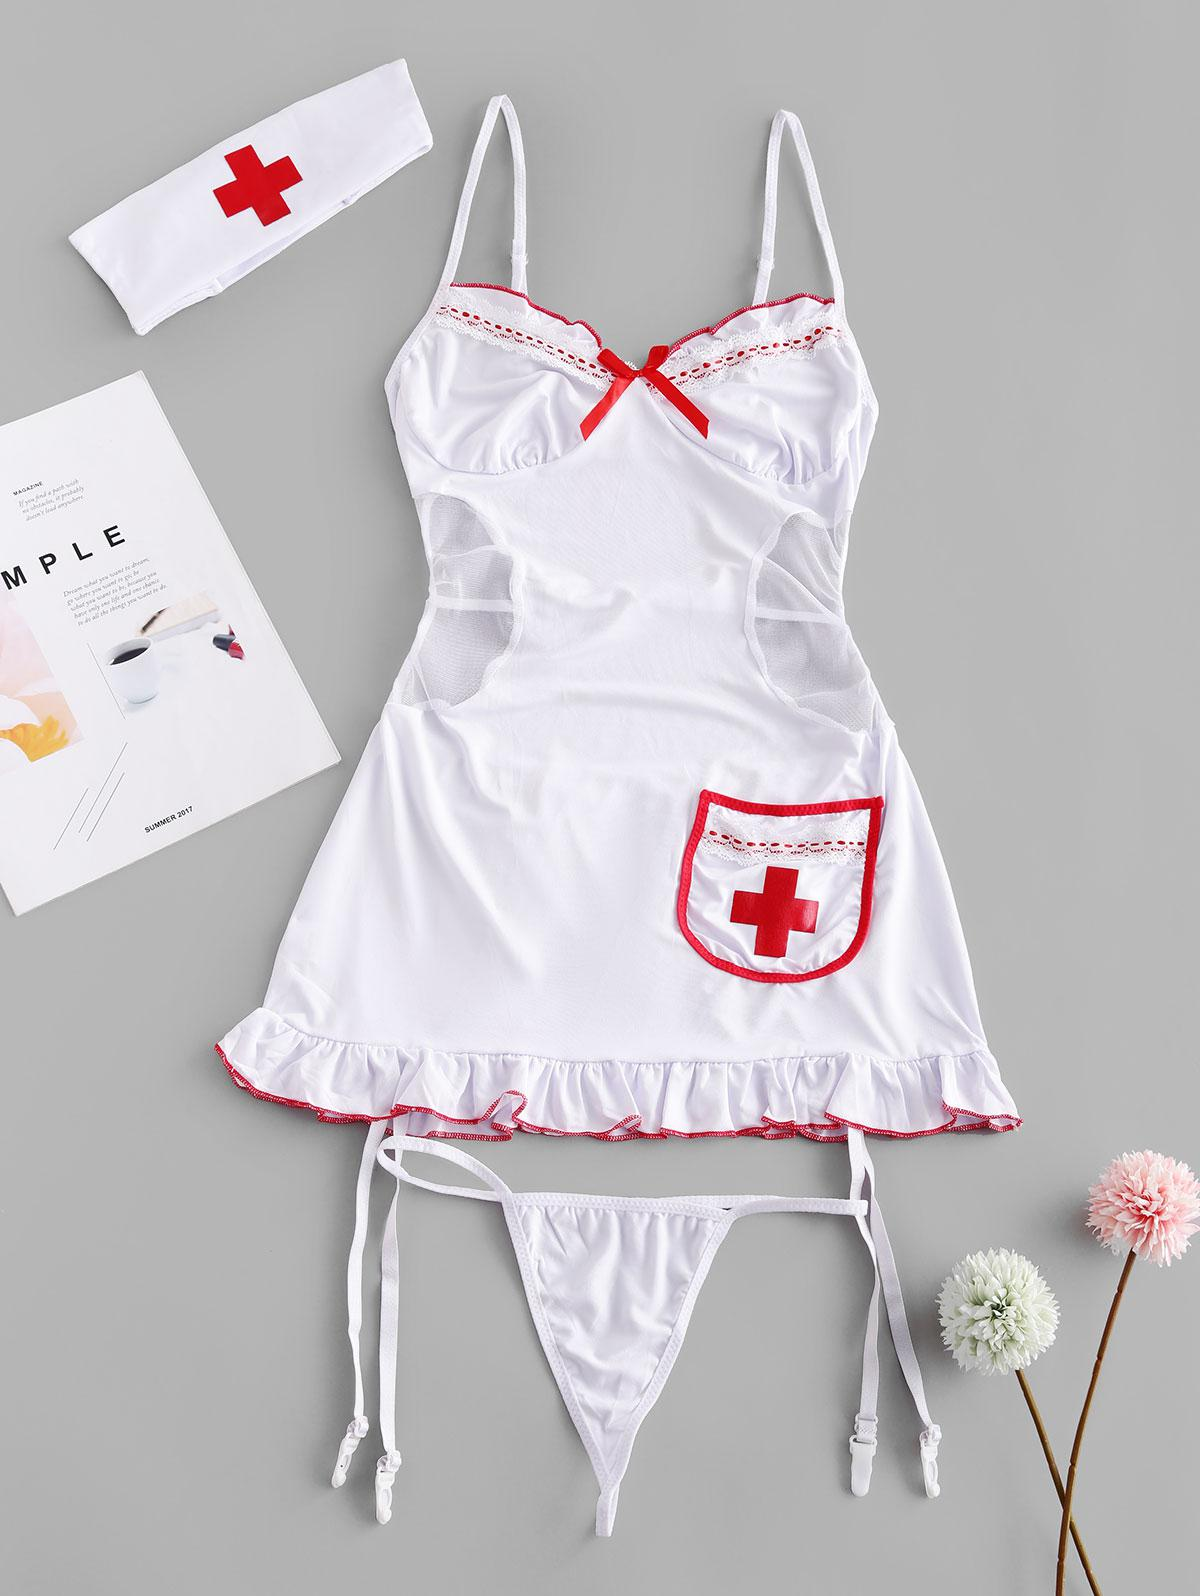 Lace Mesh Garter Cutout Lingerie Nurse Costume Set